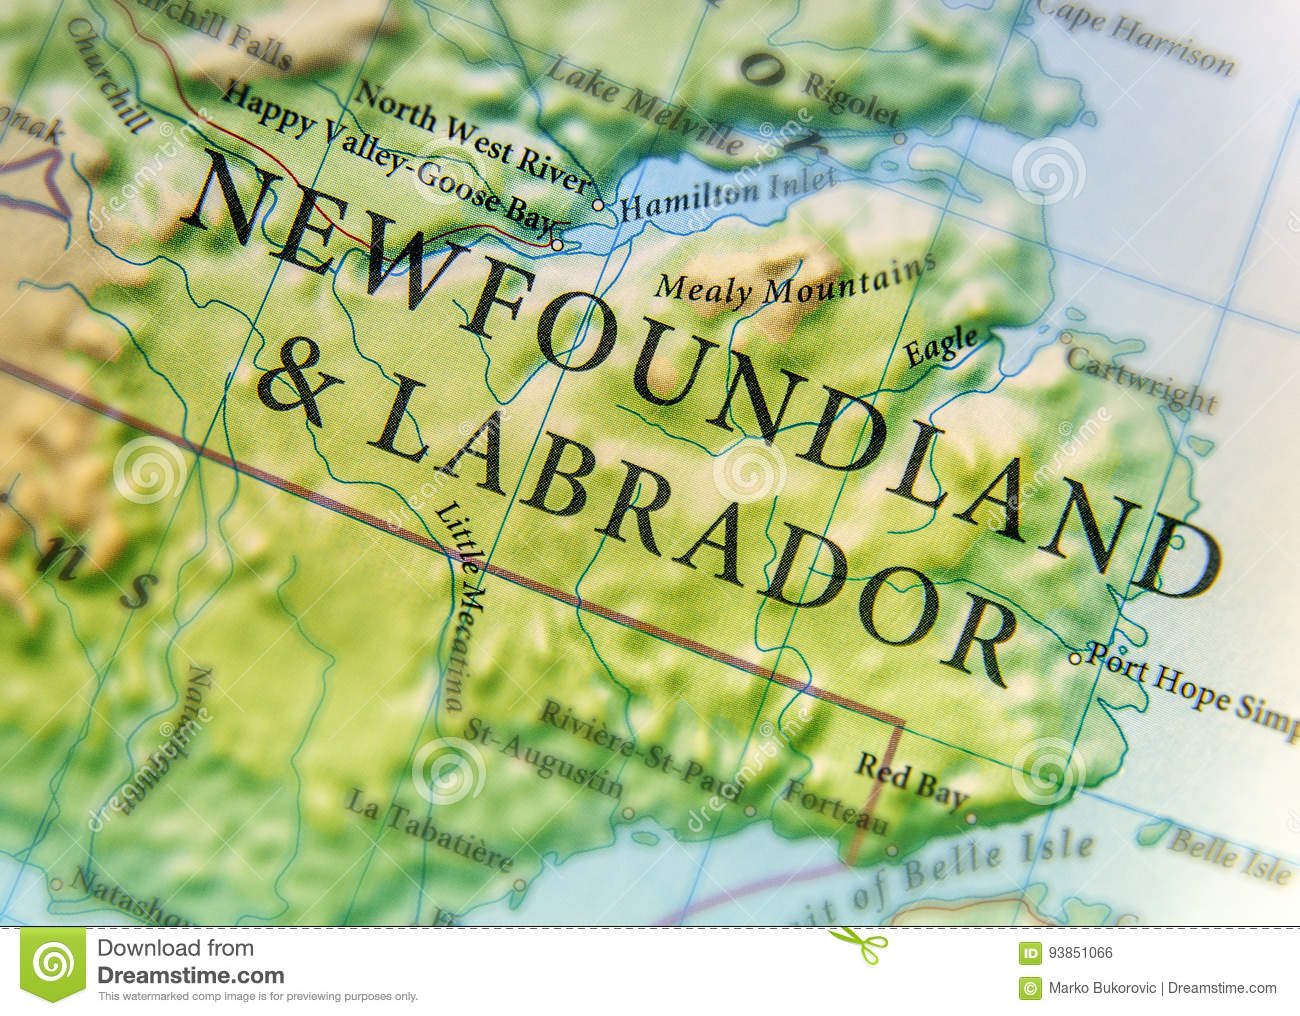 Map Of Canada Newfoundland.Geographic Map Of Canada Country And Newfoundland Labrador With